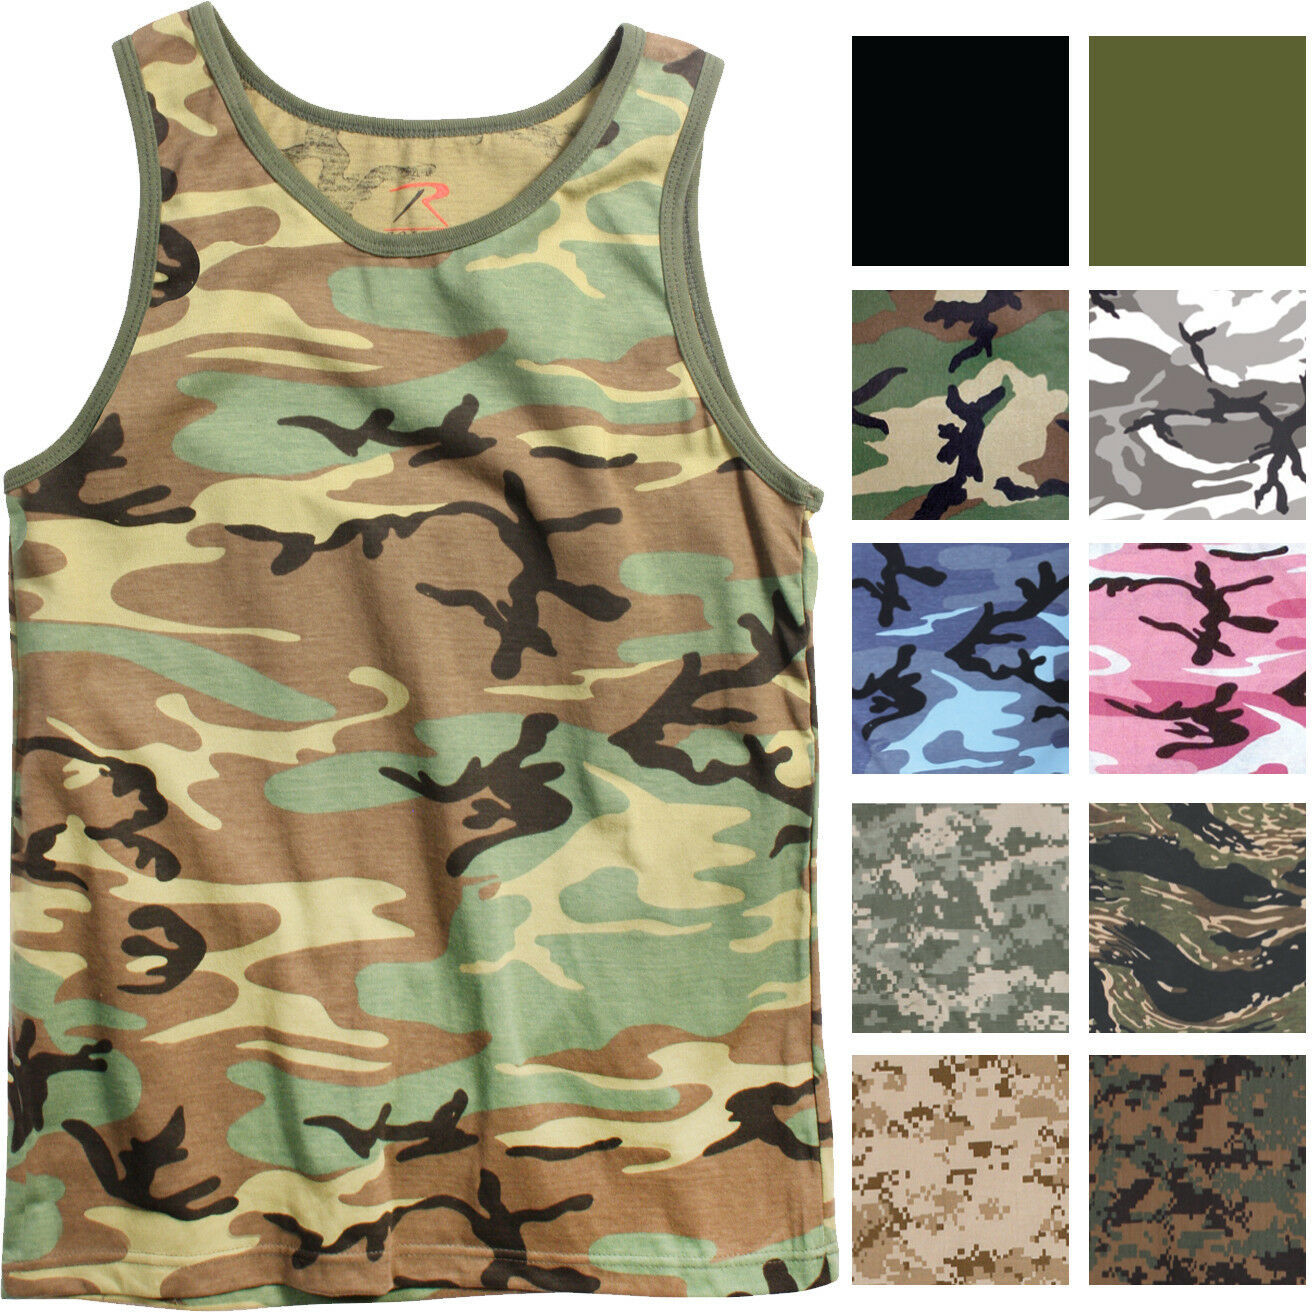 Primary image for Camo Tank Top Sleeveless Muscle Tee Camouflage Tactical Army Military A T-Shirt